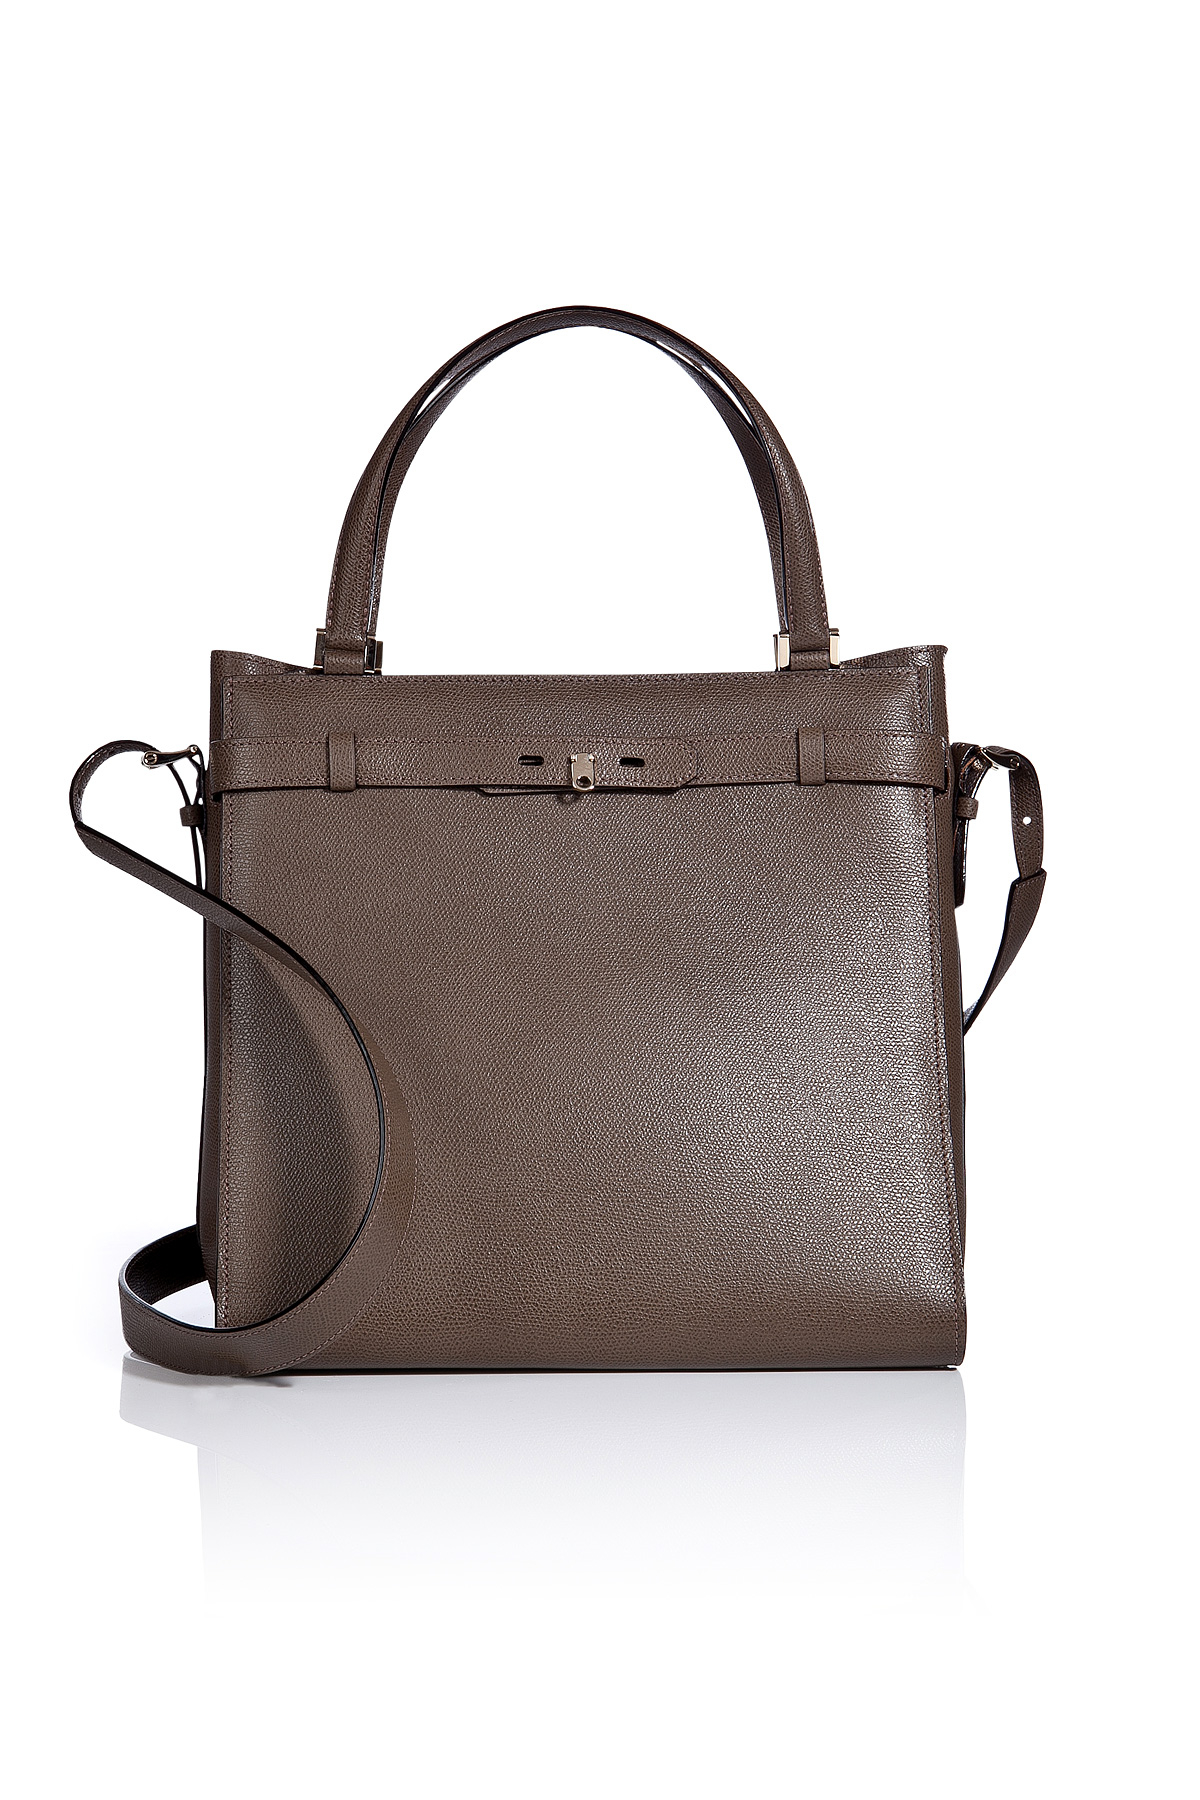 Valextra Leather Large B-Cube Handbag in Gray